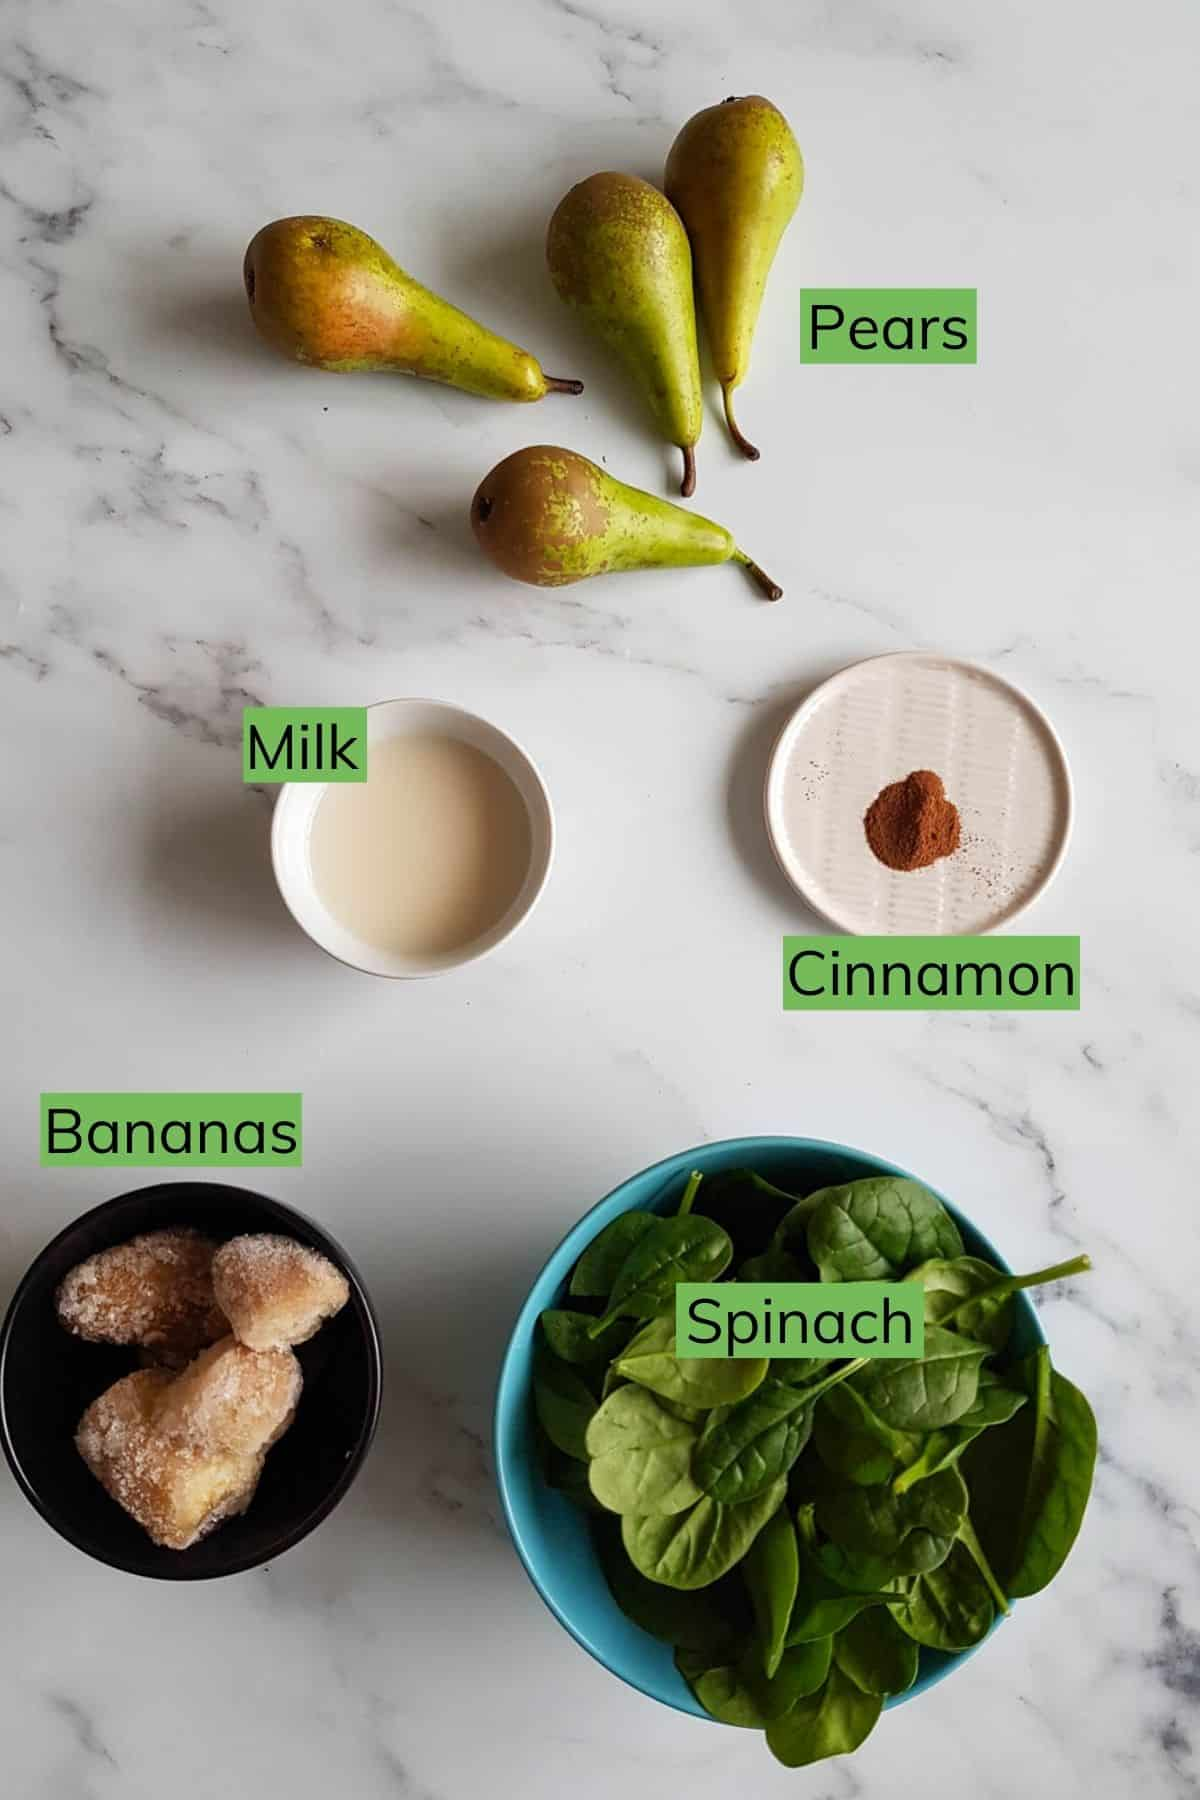 The ingredients required to make pear smoothie laid out on a table.